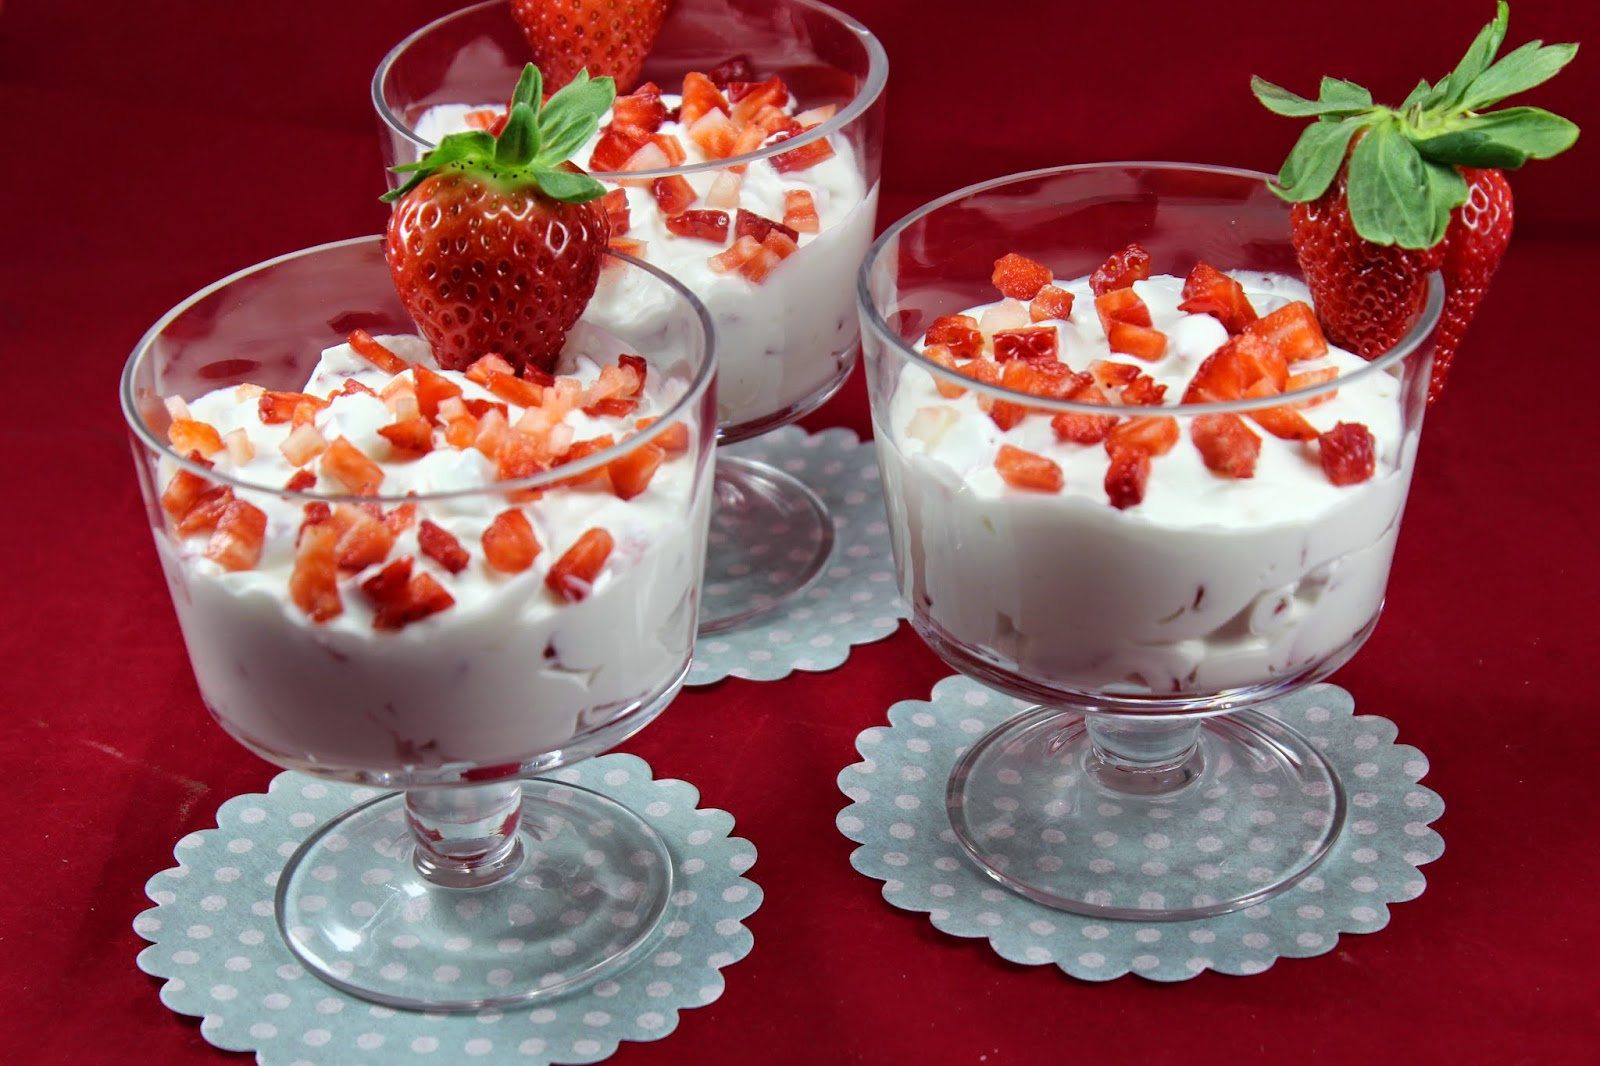 Fresas con nata y yogurt Thermomix